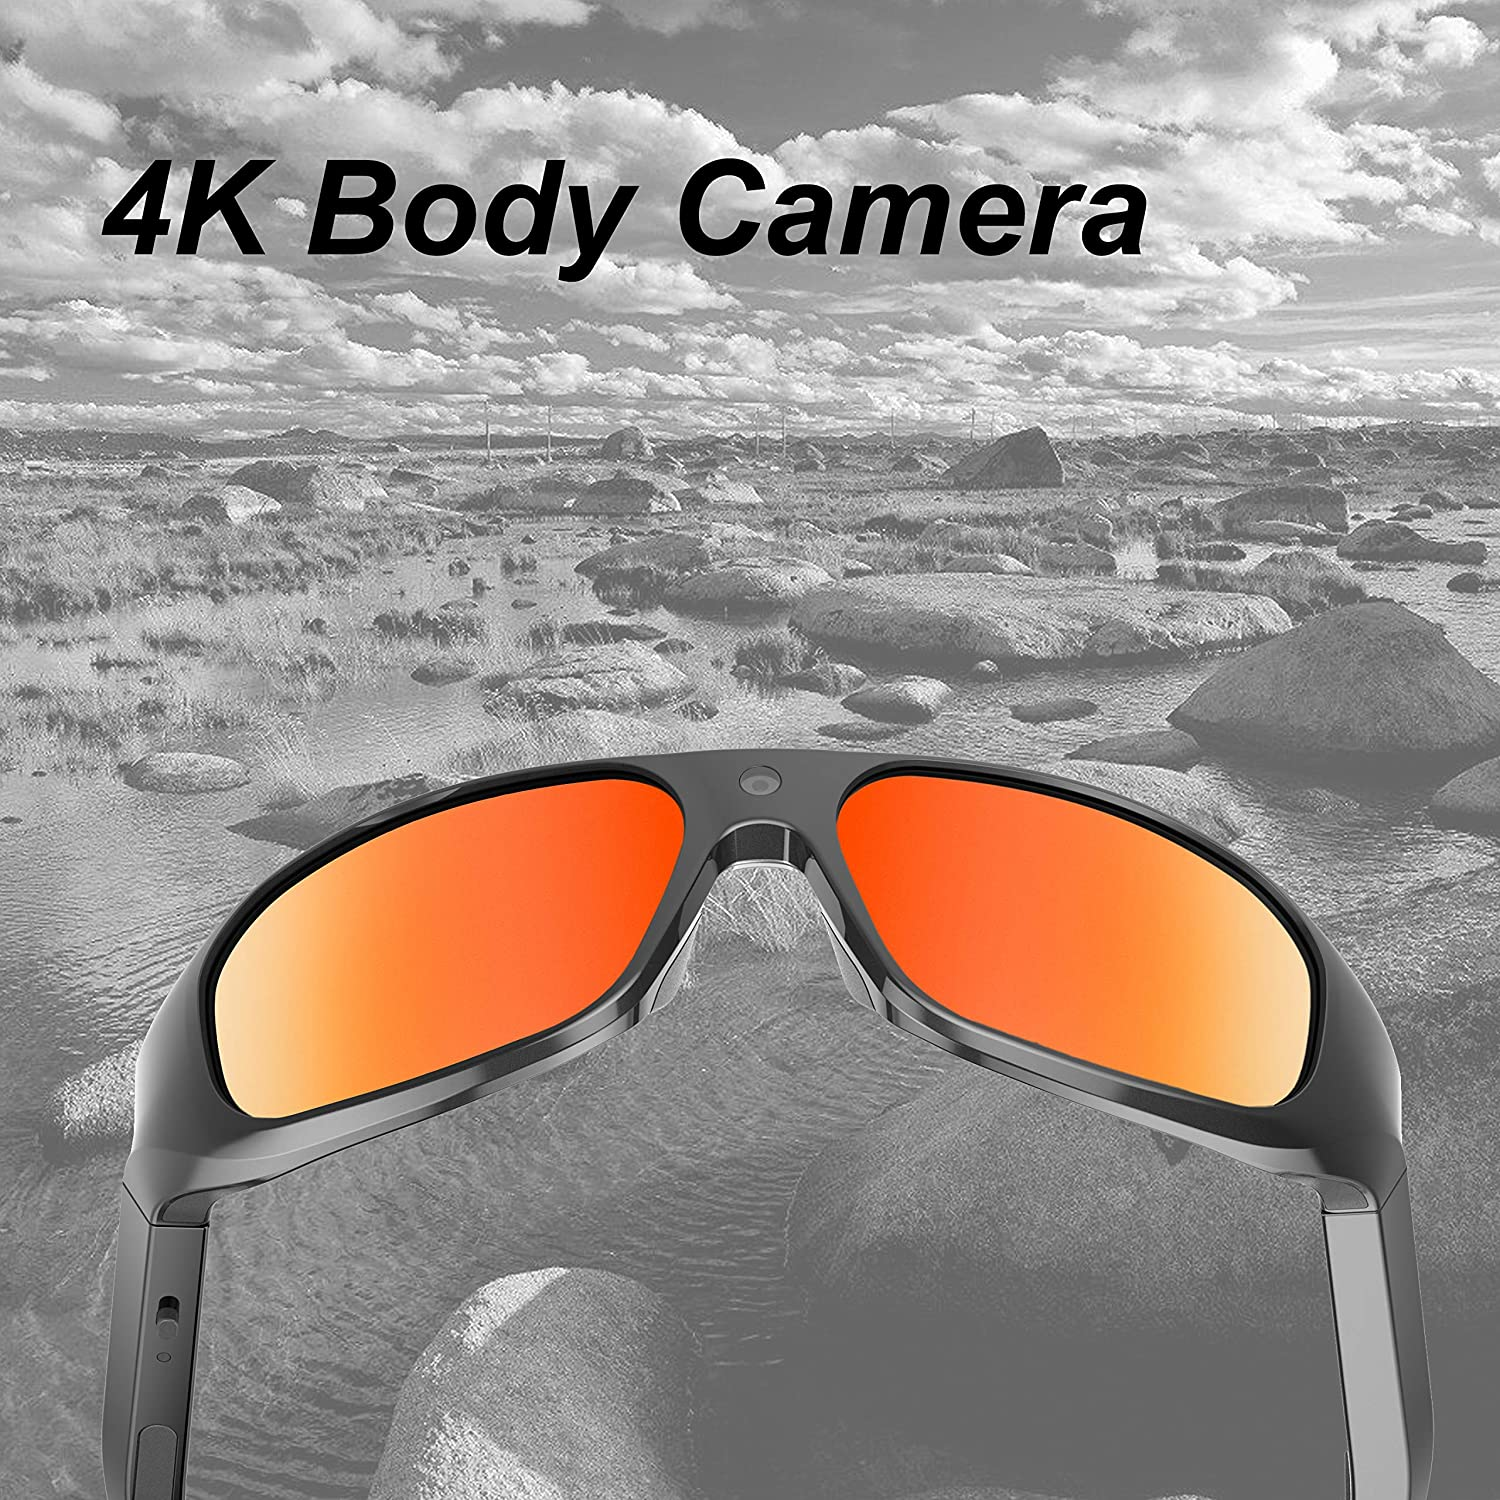 64GB OhO sunshine 4K Ultra HD Water Resistance Video Sunglasses, Sports Action Camera with Built-in 64GB Memory and Polarized UV400 Protection Safety Lenses,Unisex Sport Design.